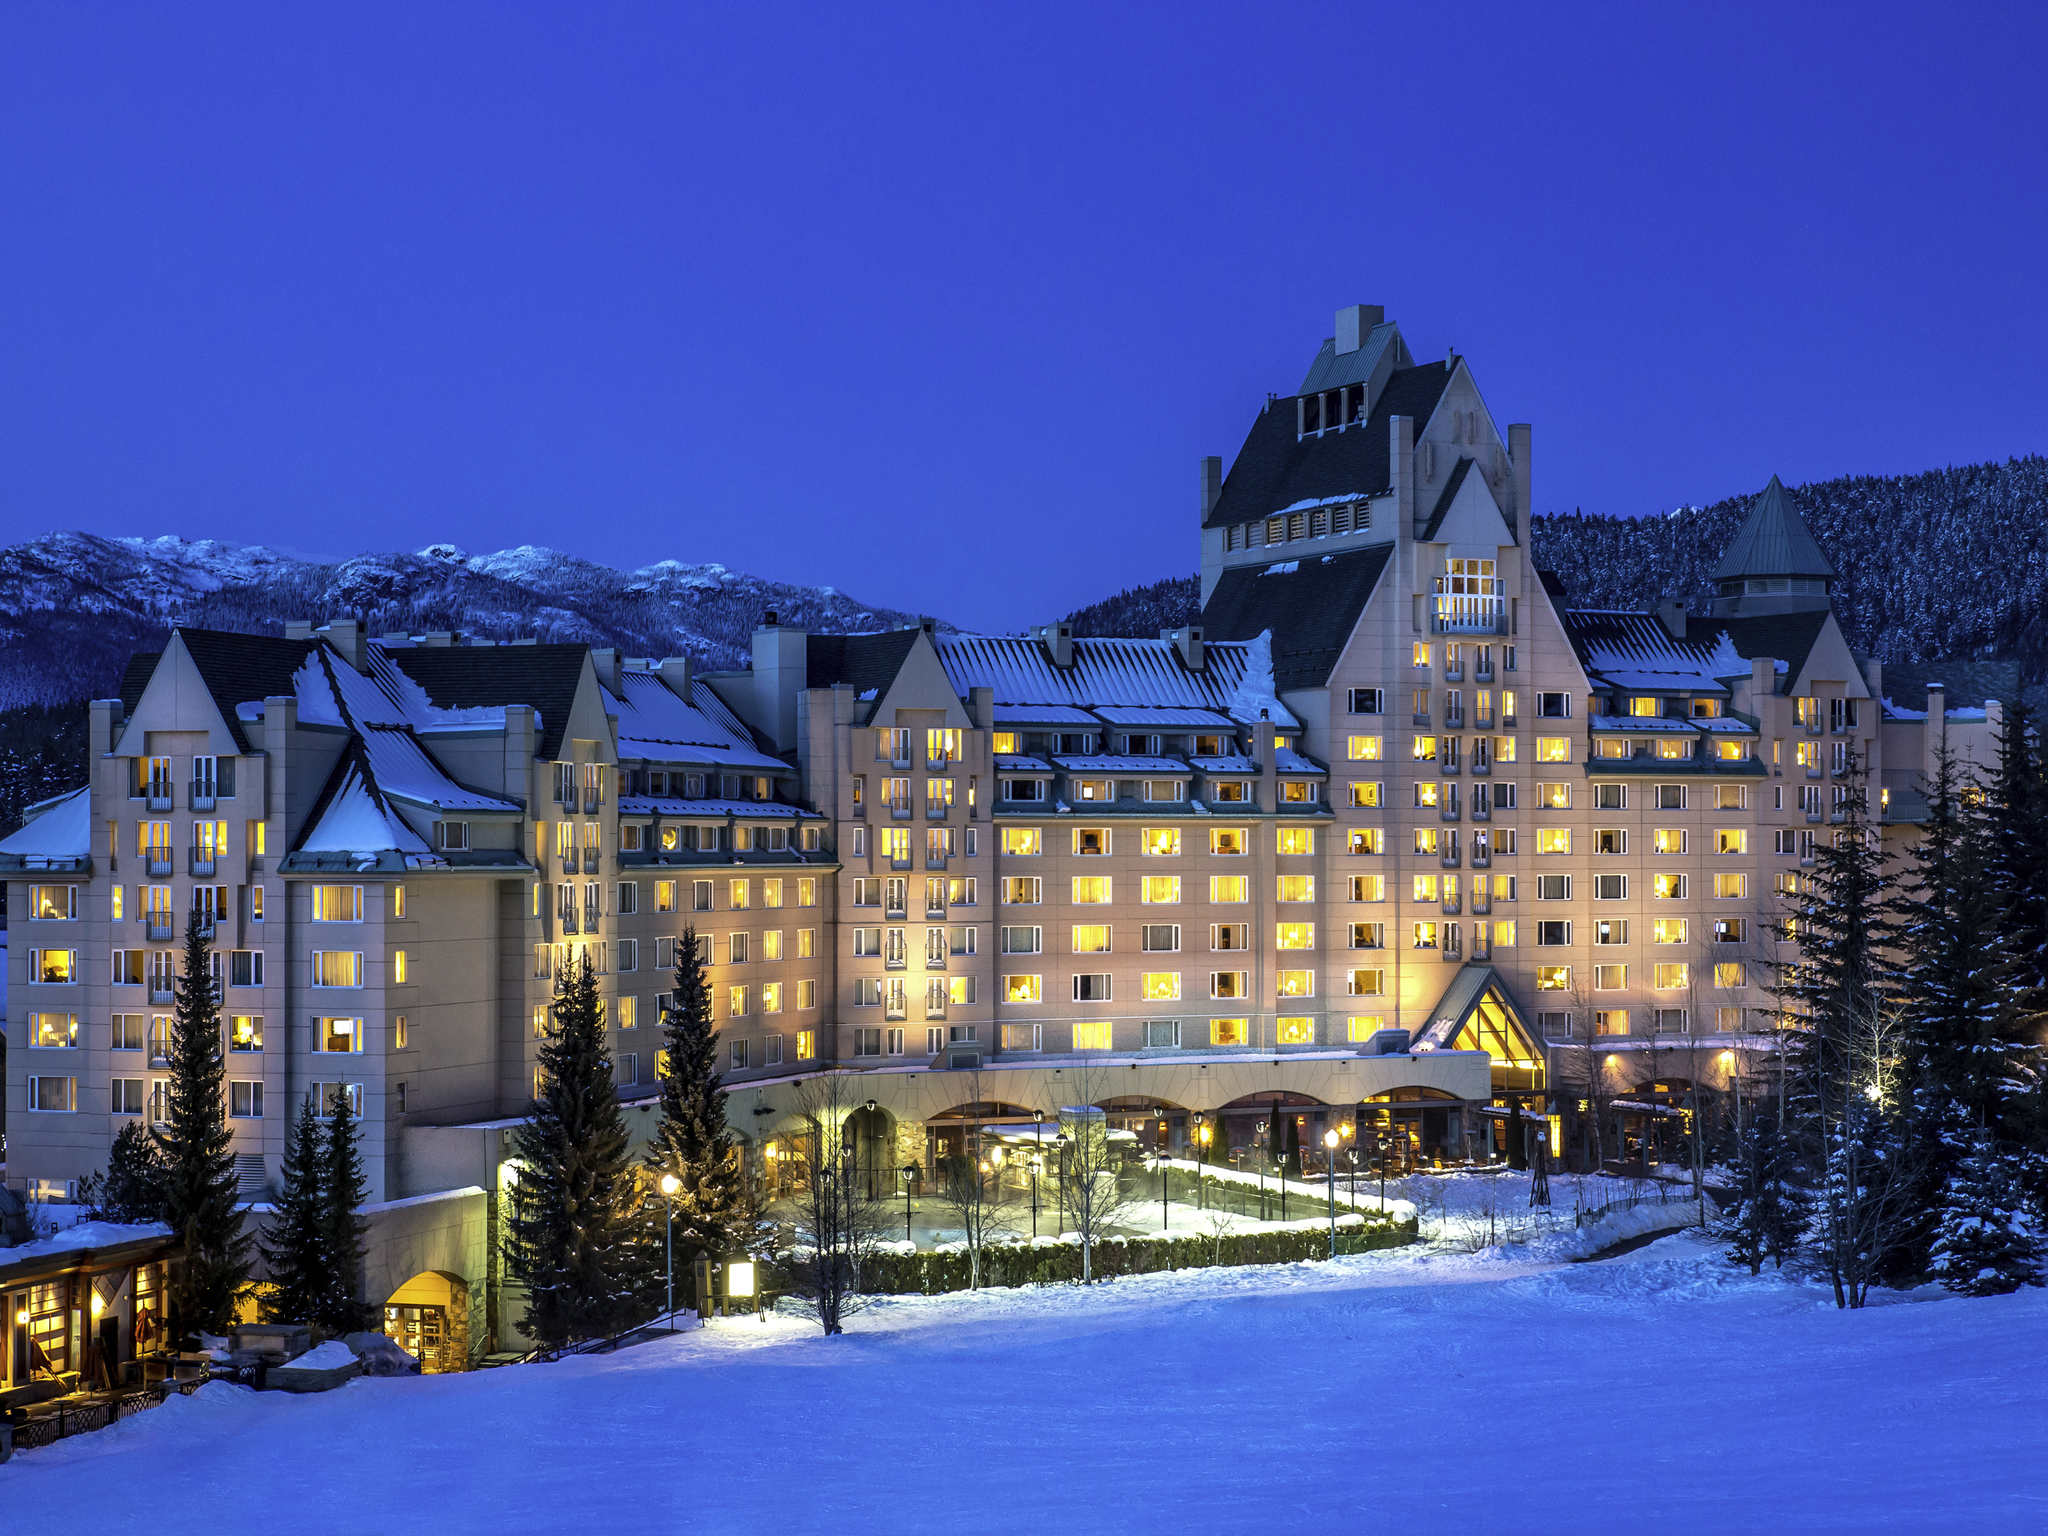 Hotell – Fairmont Château Whistler